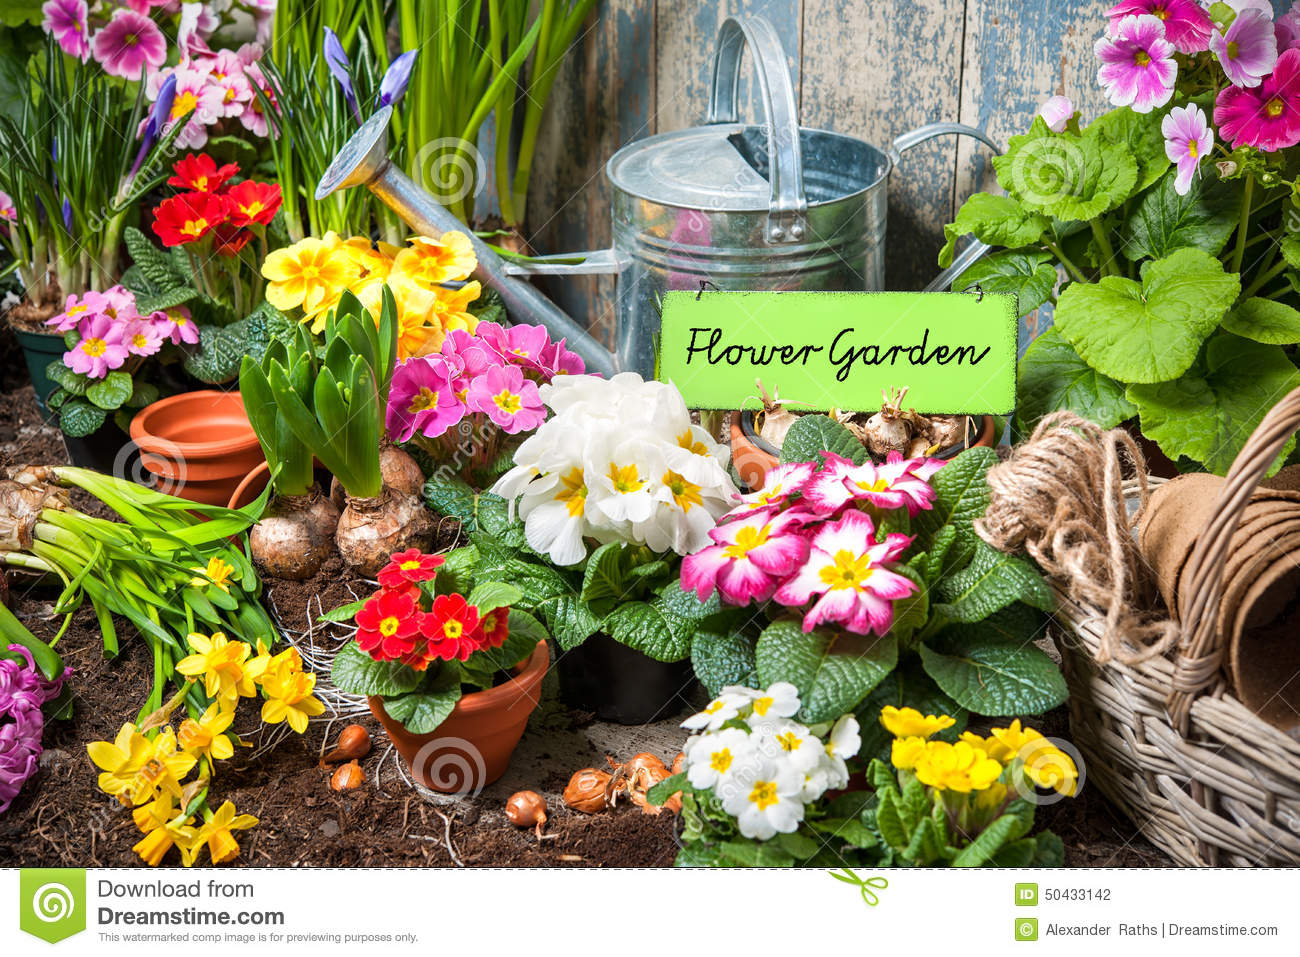 Flower Garden Sign Stock Photo Image 50433142